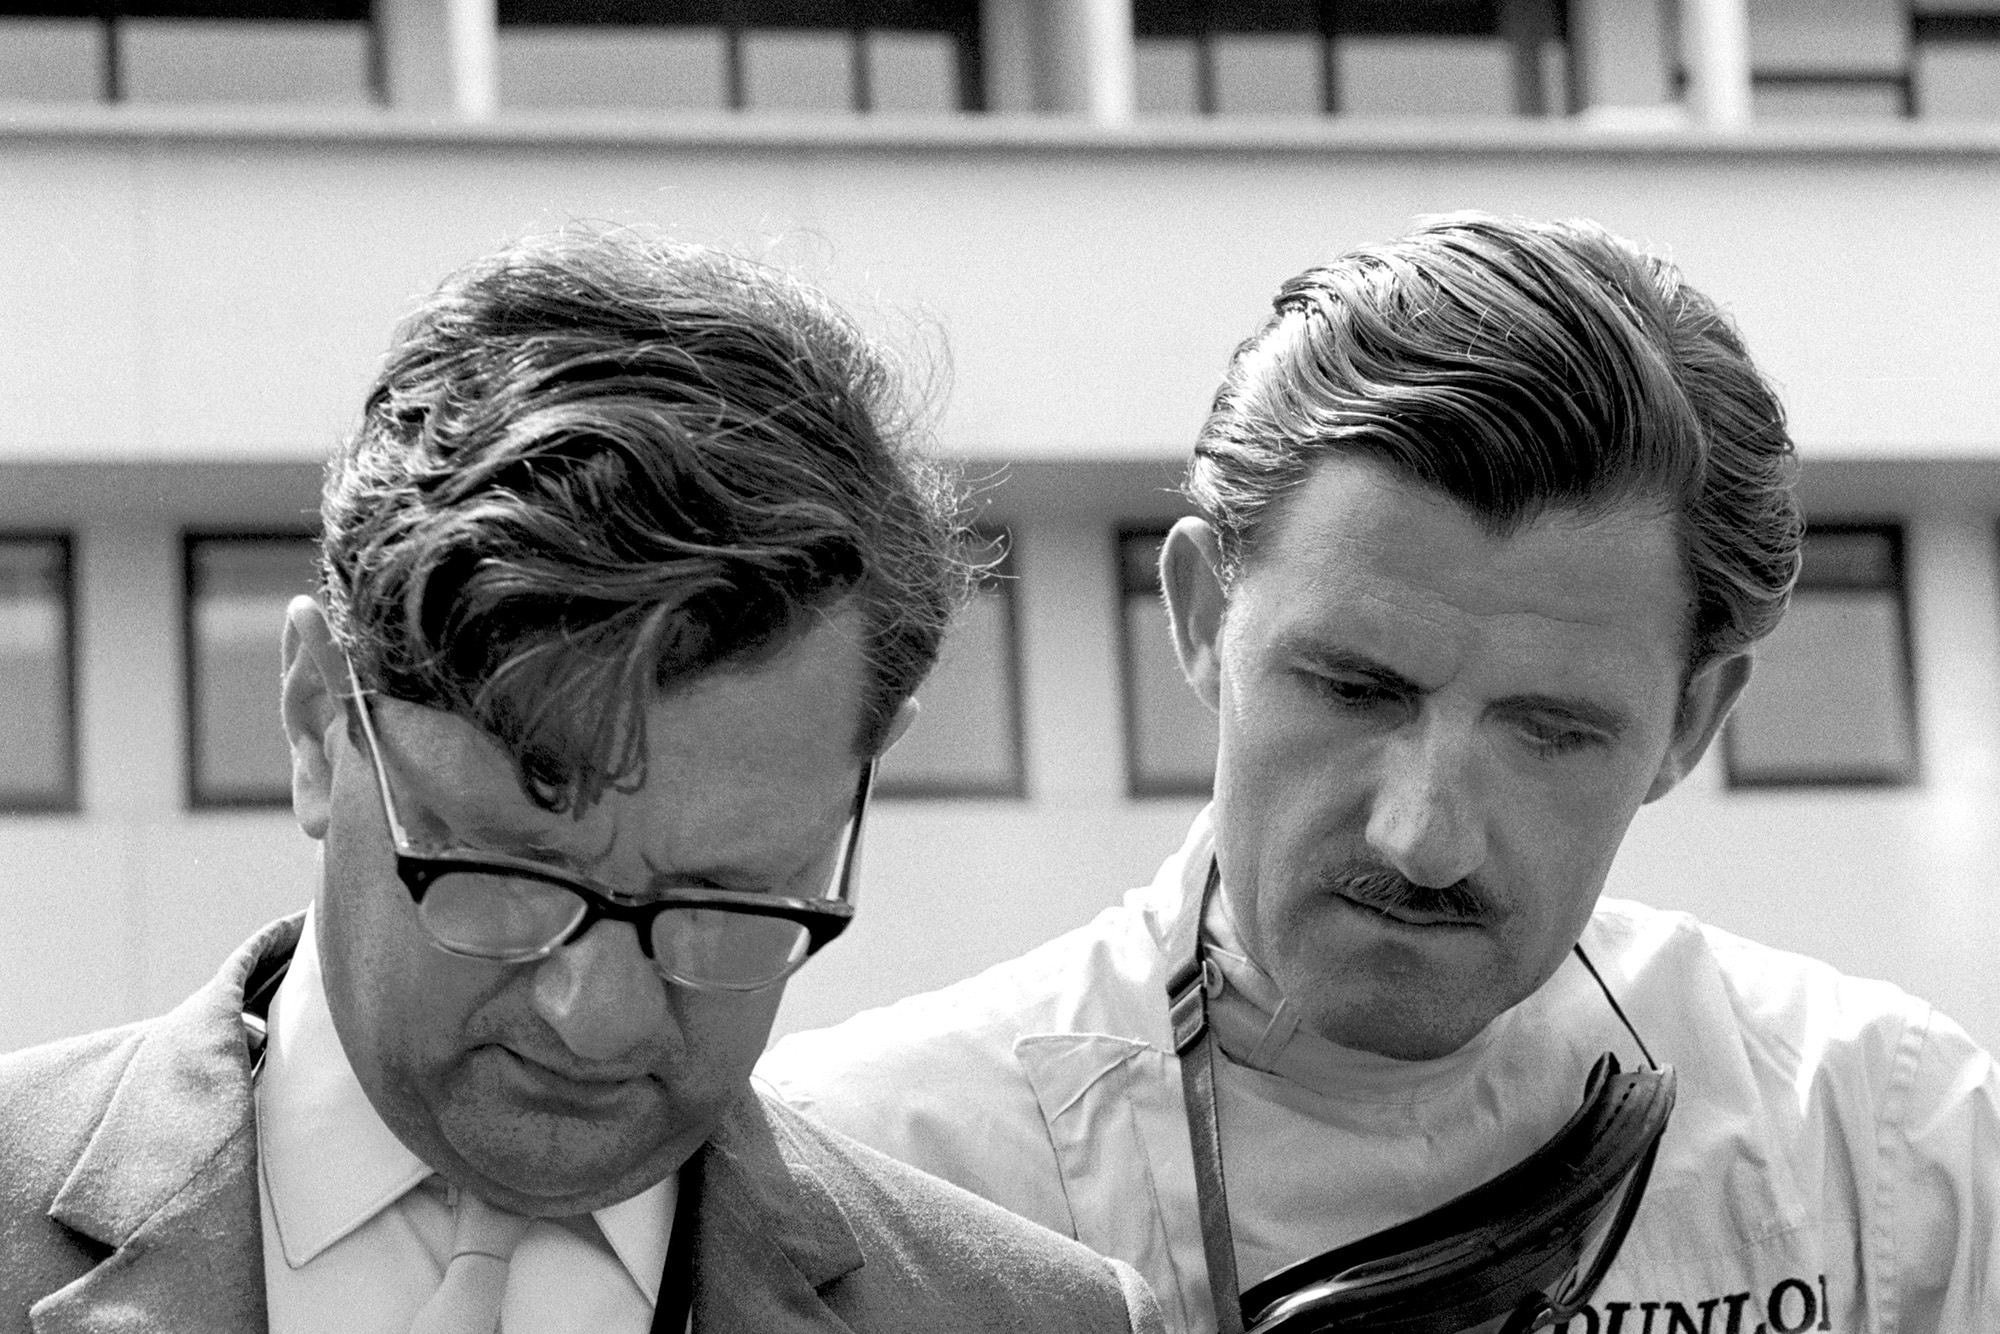 BRM's Graham Hill and Tony Rudd prepare for the race